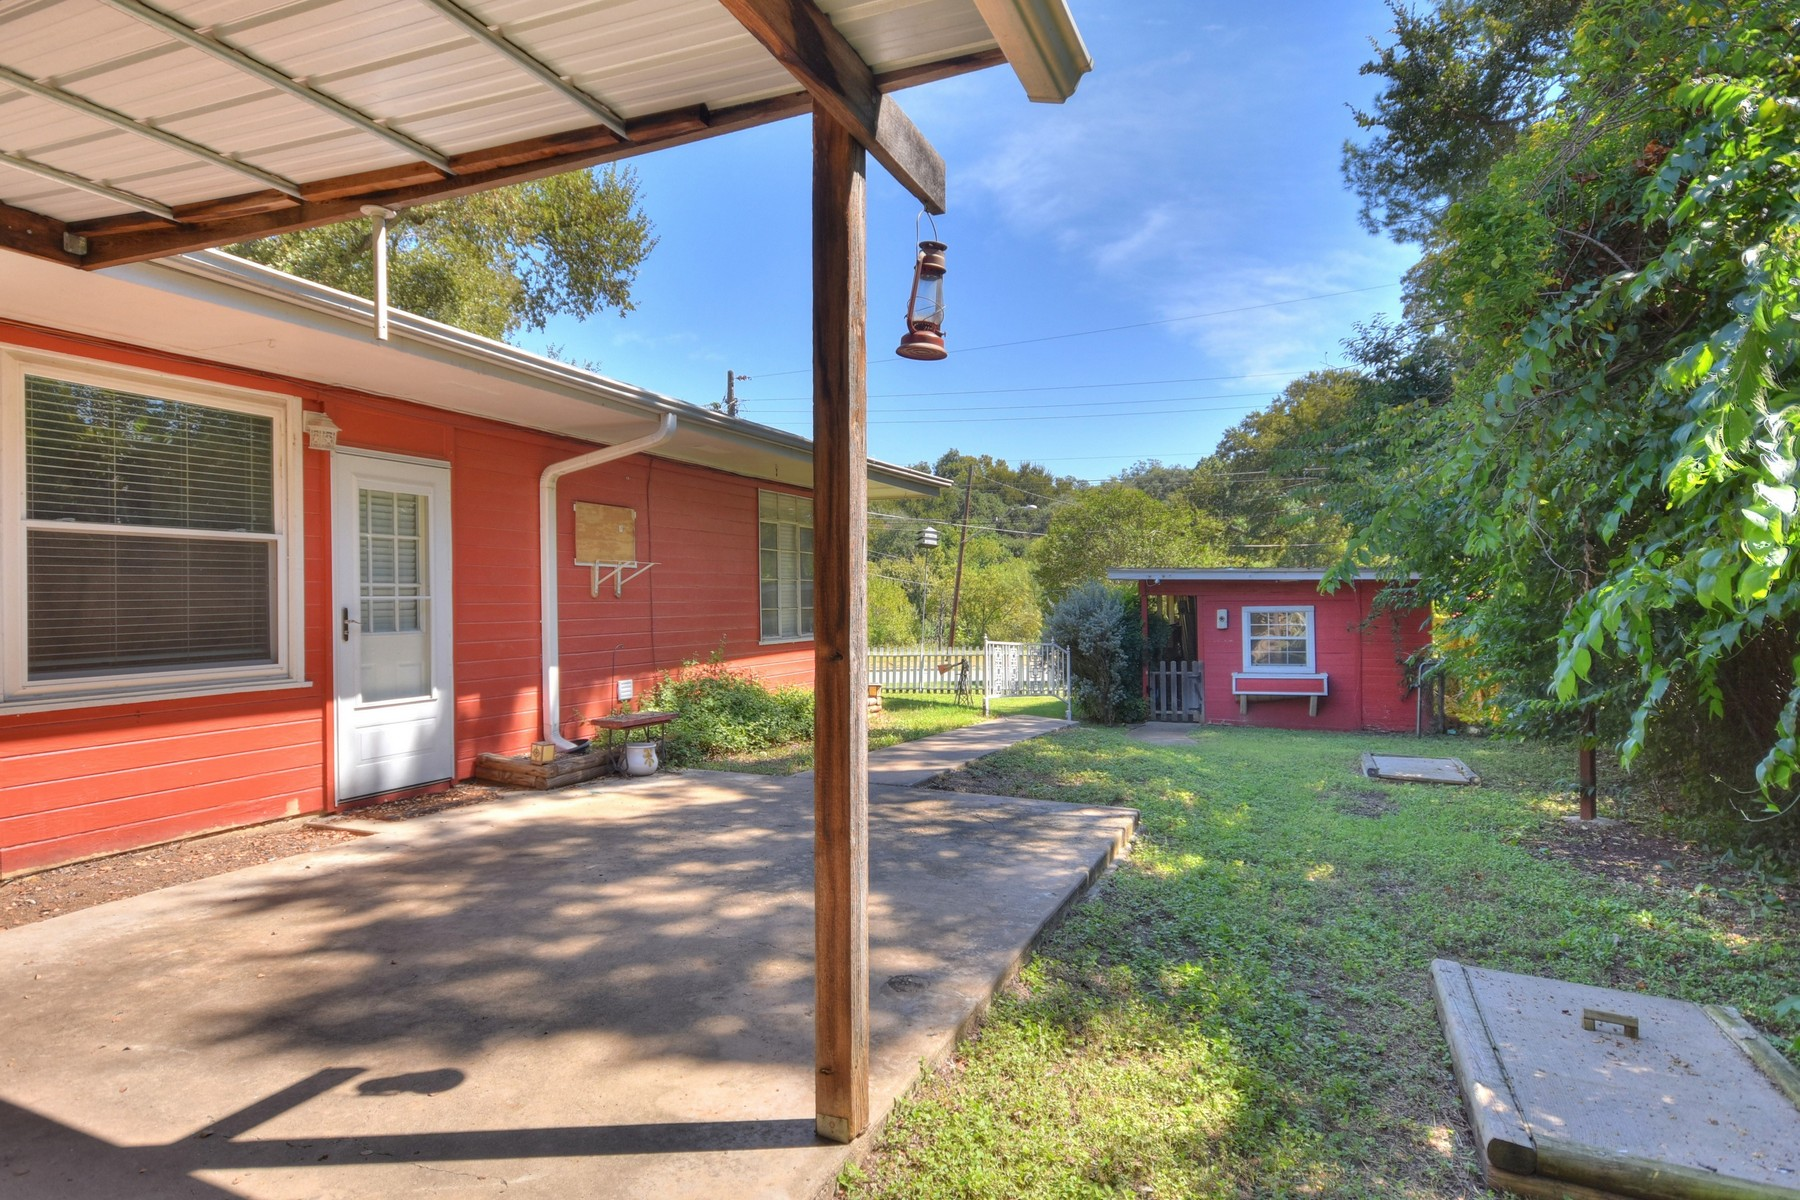 Additional photo for property listing at Hidden Gem in Ridgelea! 4103 Ridgelea Dr Austin, Texas 78731 Estados Unidos